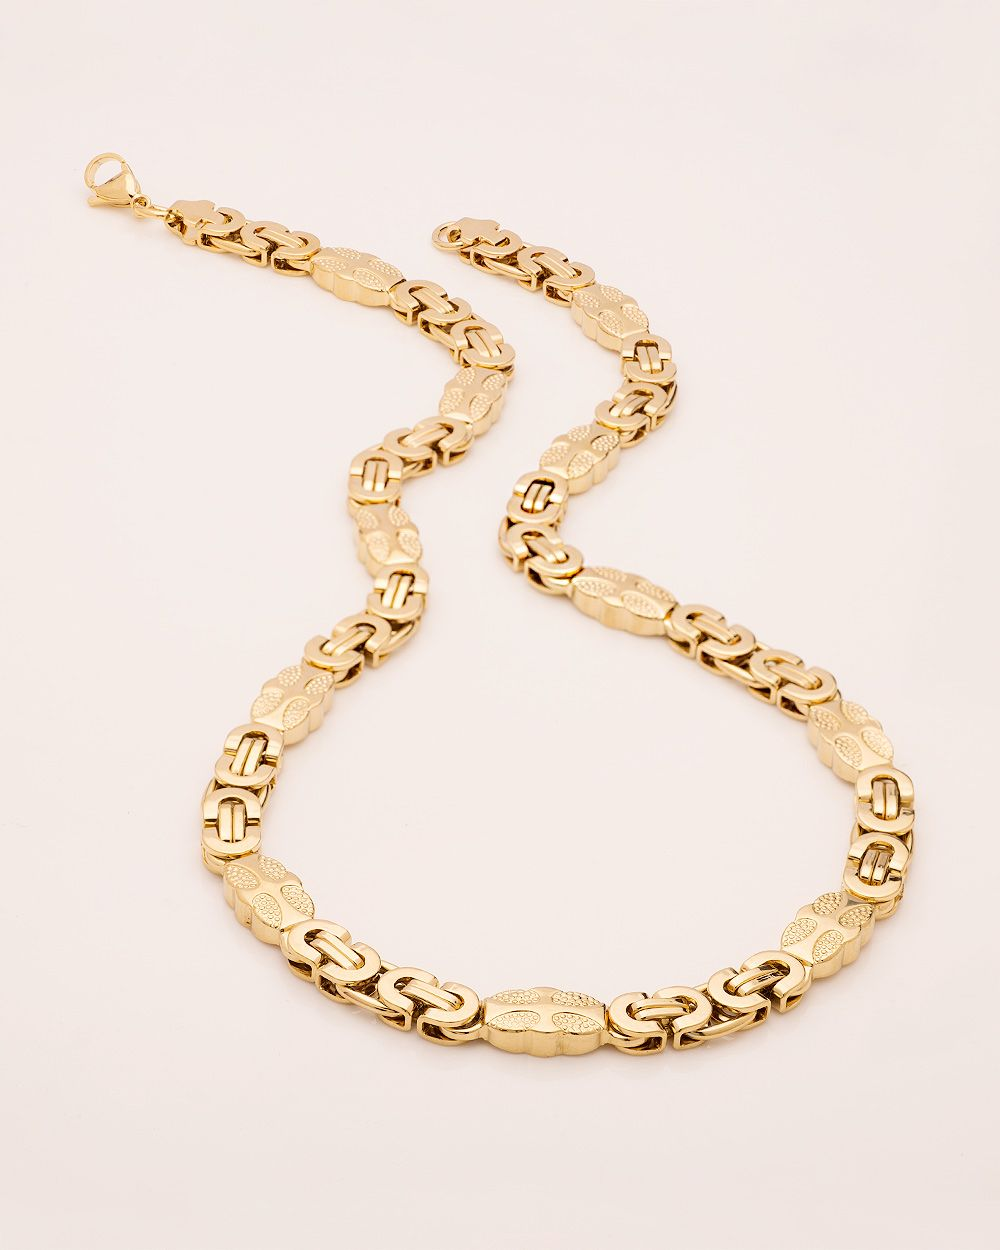 Gold Plated Chain For Men Gold Plated Chain For You Mens Chains